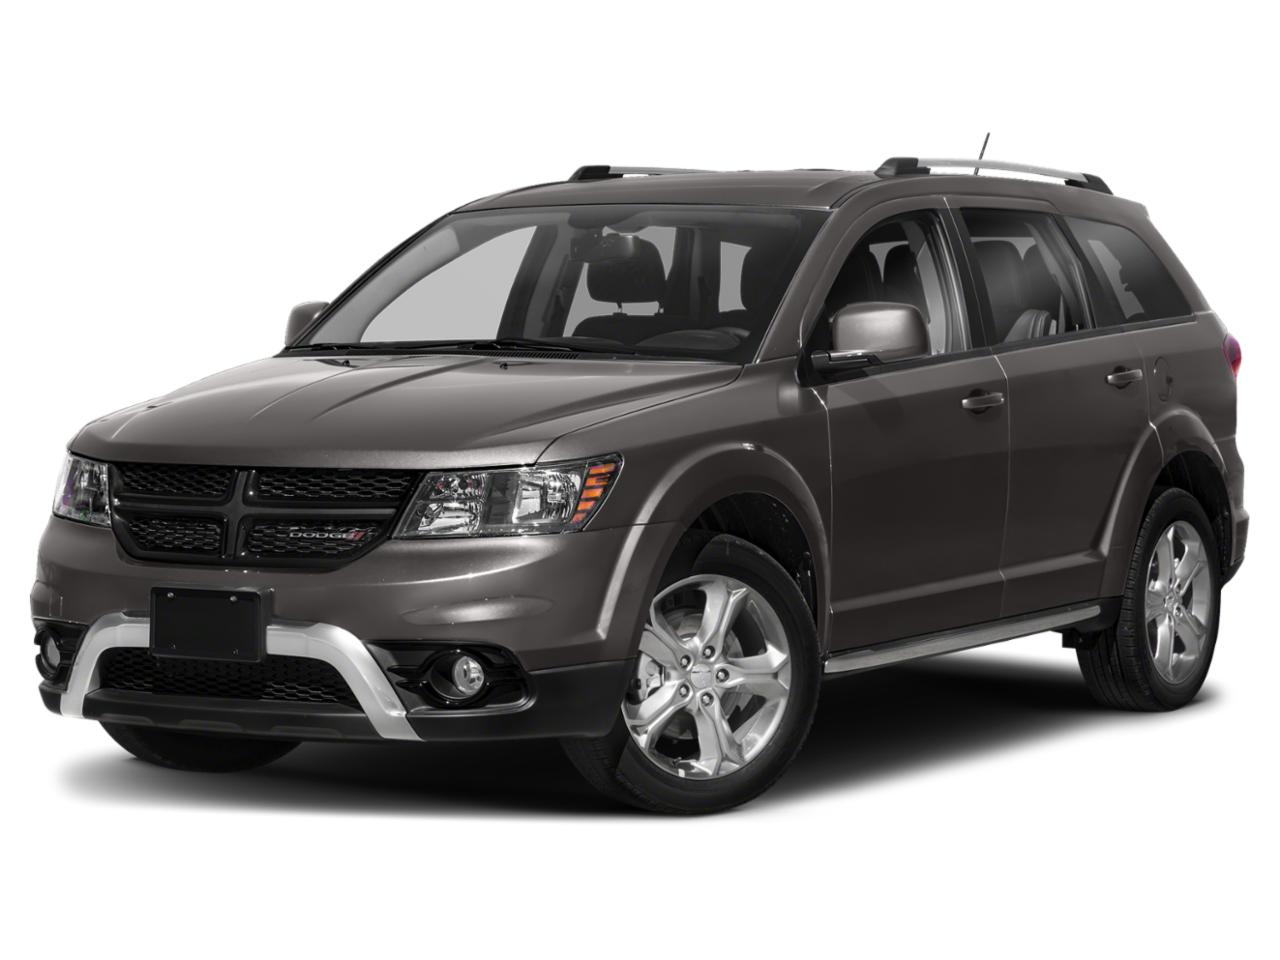 2019 Dodge Journey Vehicle Photo in Greeley, CO 80634